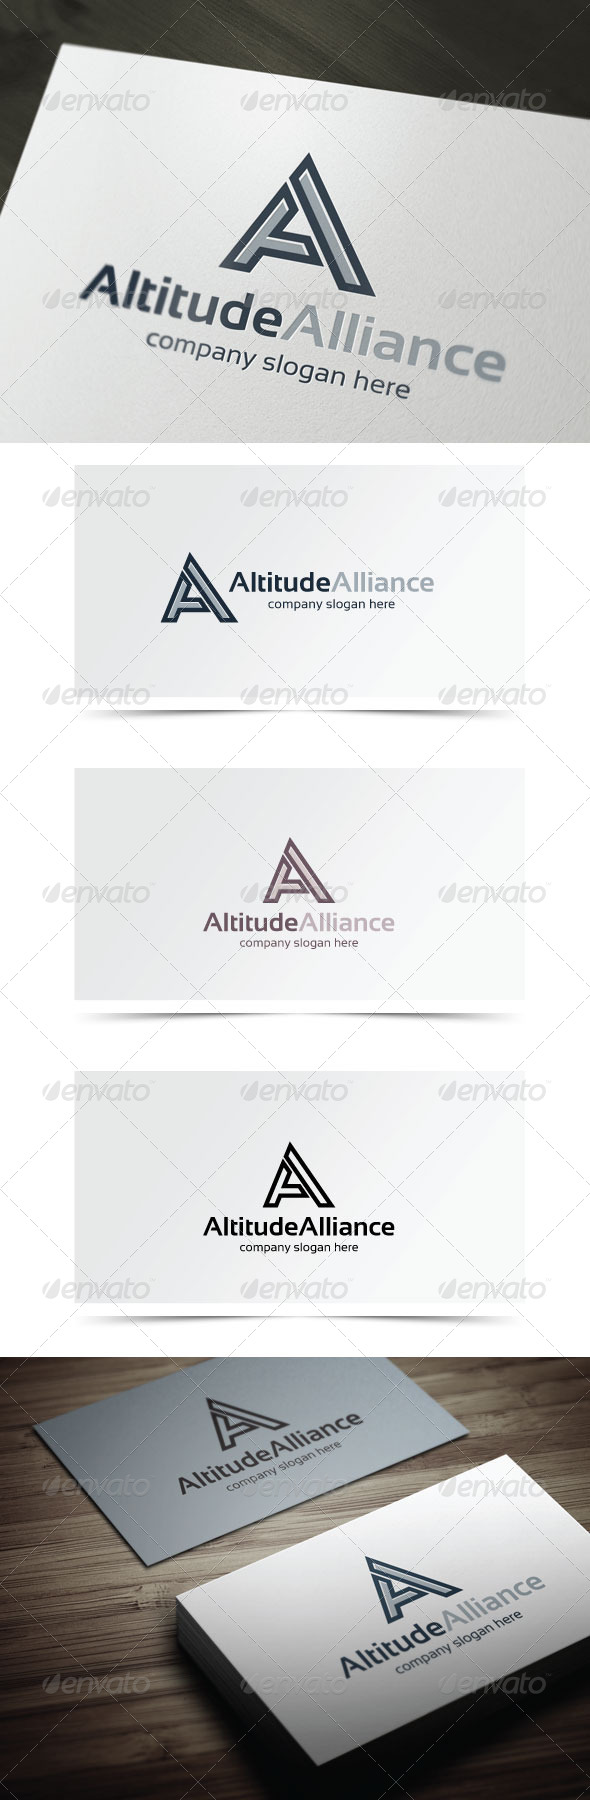 GraphicRiver Altitude Alliance 6202351